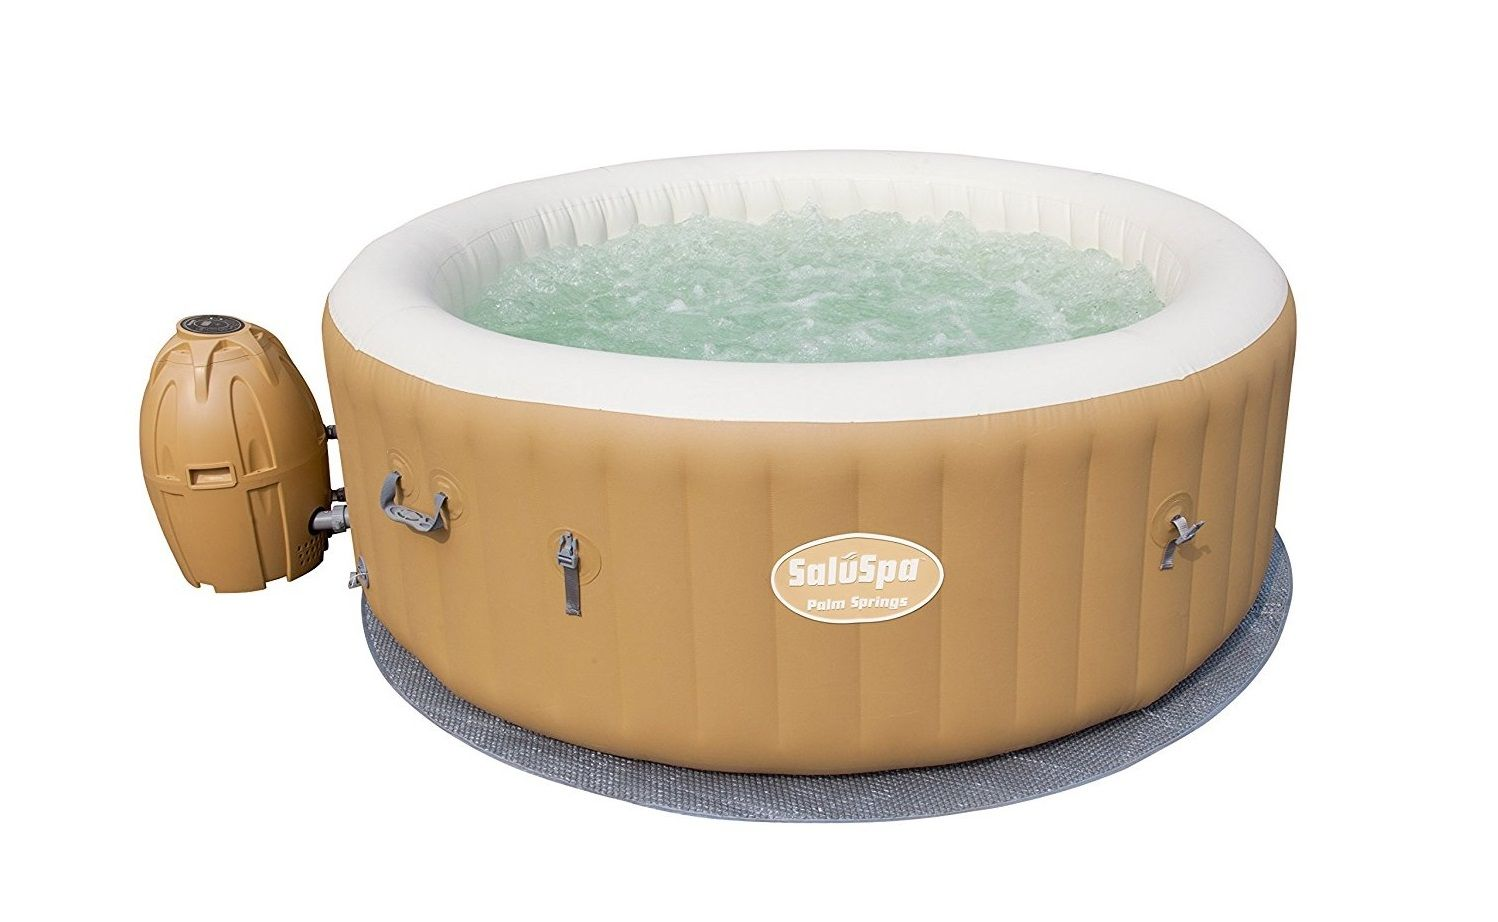 Recommended Best Inflatable Hot Tub Inflatable Hot Tubs Best